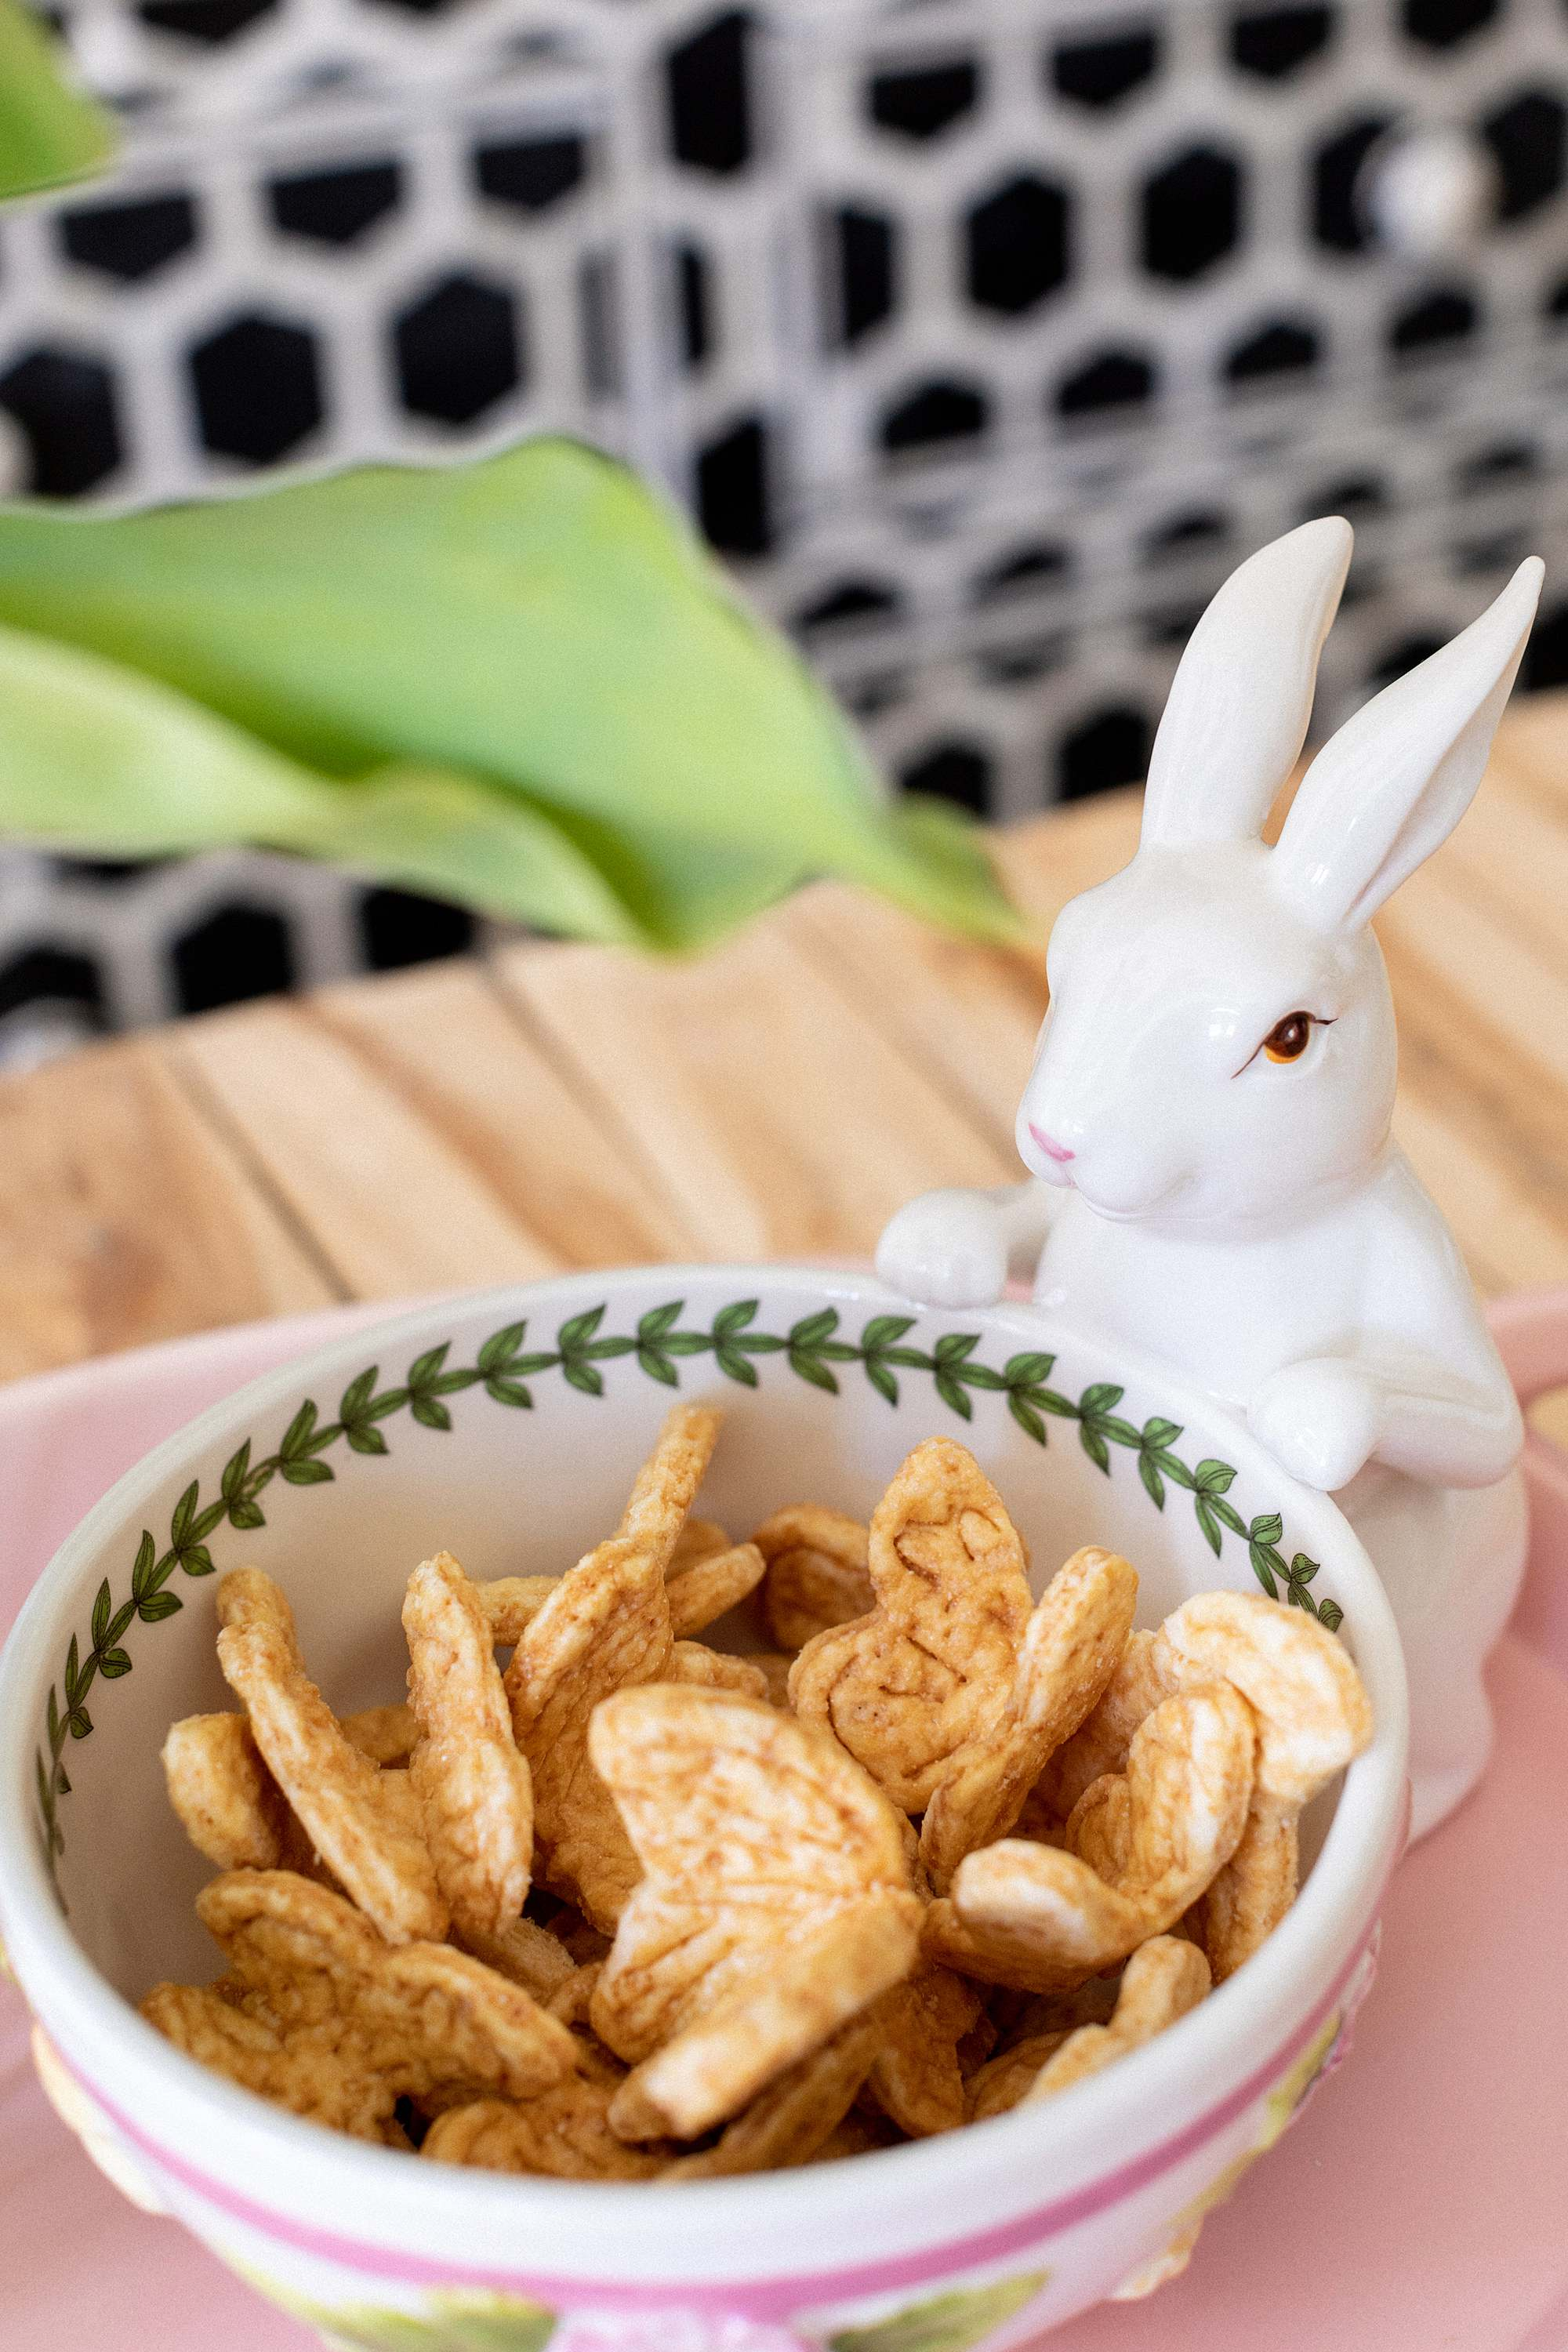 butterfly cookies in bunny bowl for easter ideas setting table - home and garden lifestyle blogger Diana Elizabeth